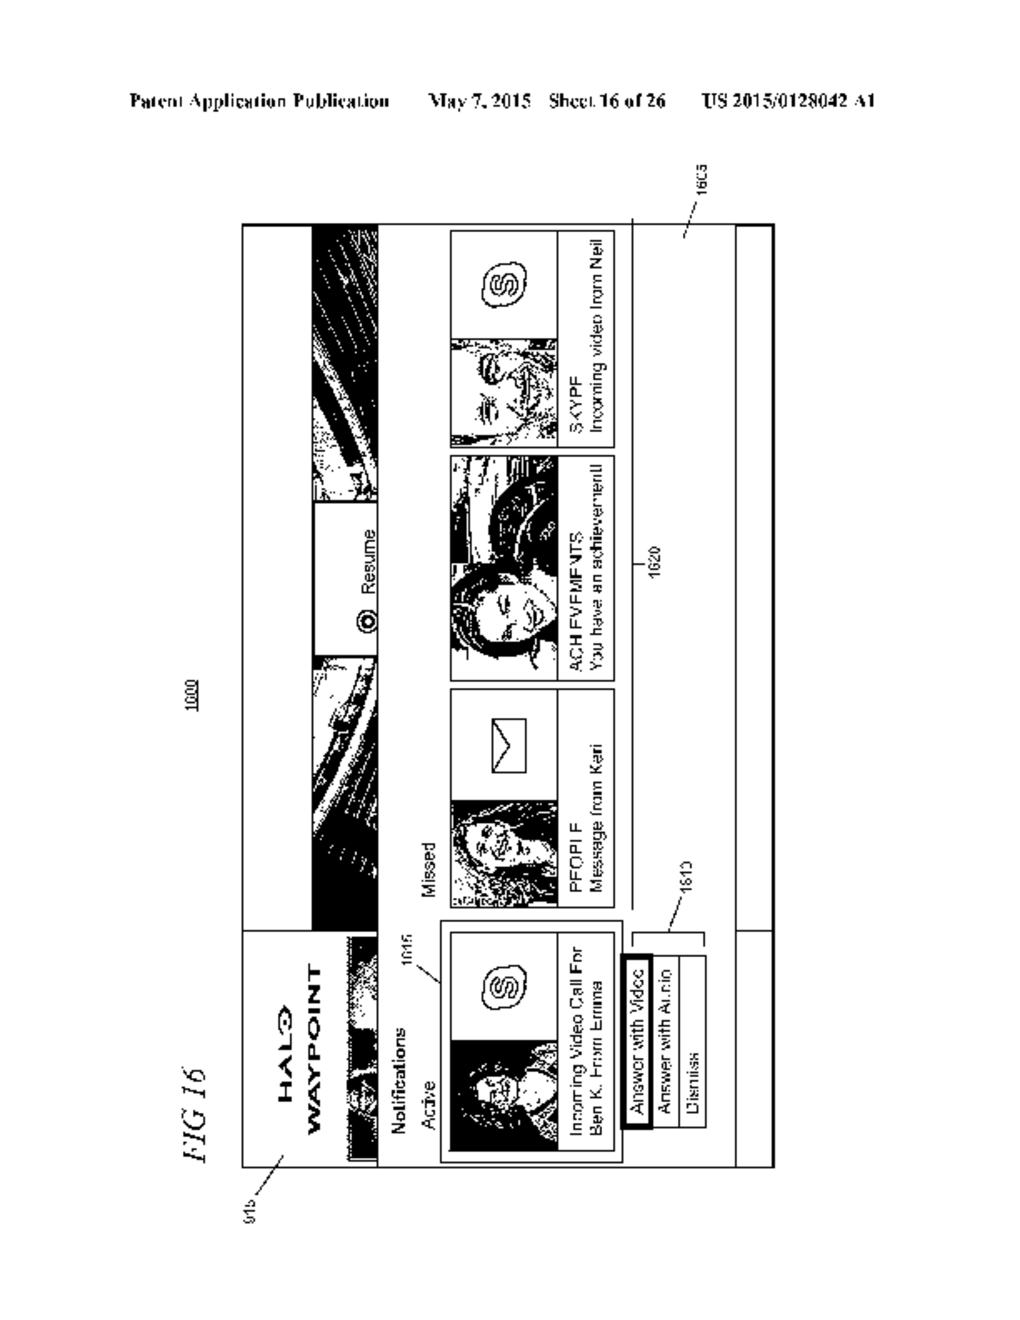 MULTITASKING EXPERIENCES WITH INTERACTIVE PICTURE-IN-PICTURE - diagram, schematic, and image 17